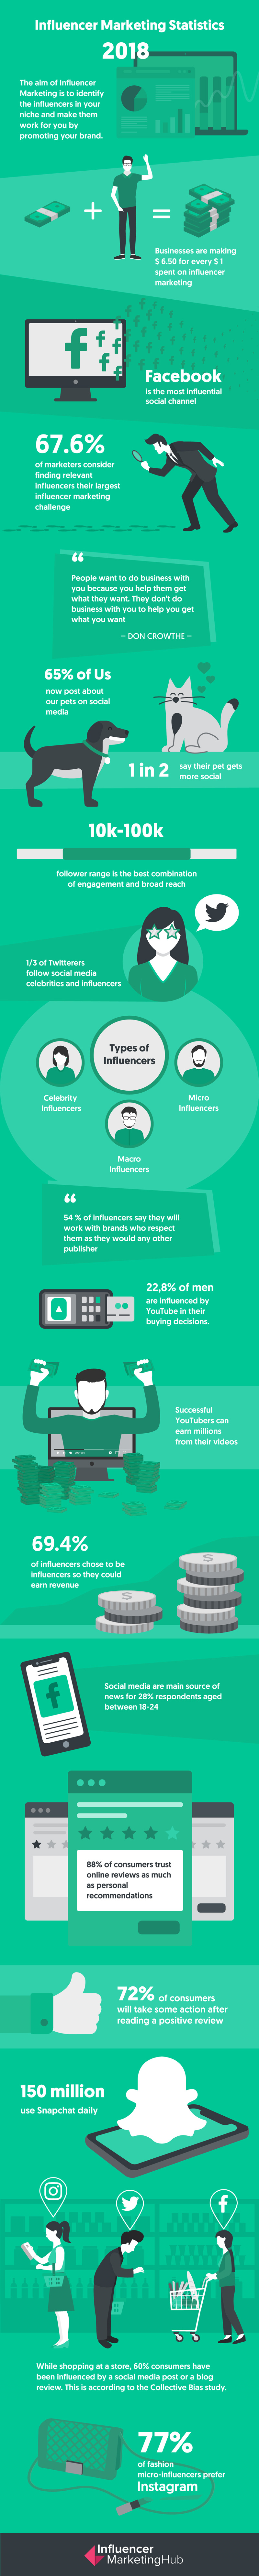 Influencer Marketing Statistics - Infographic